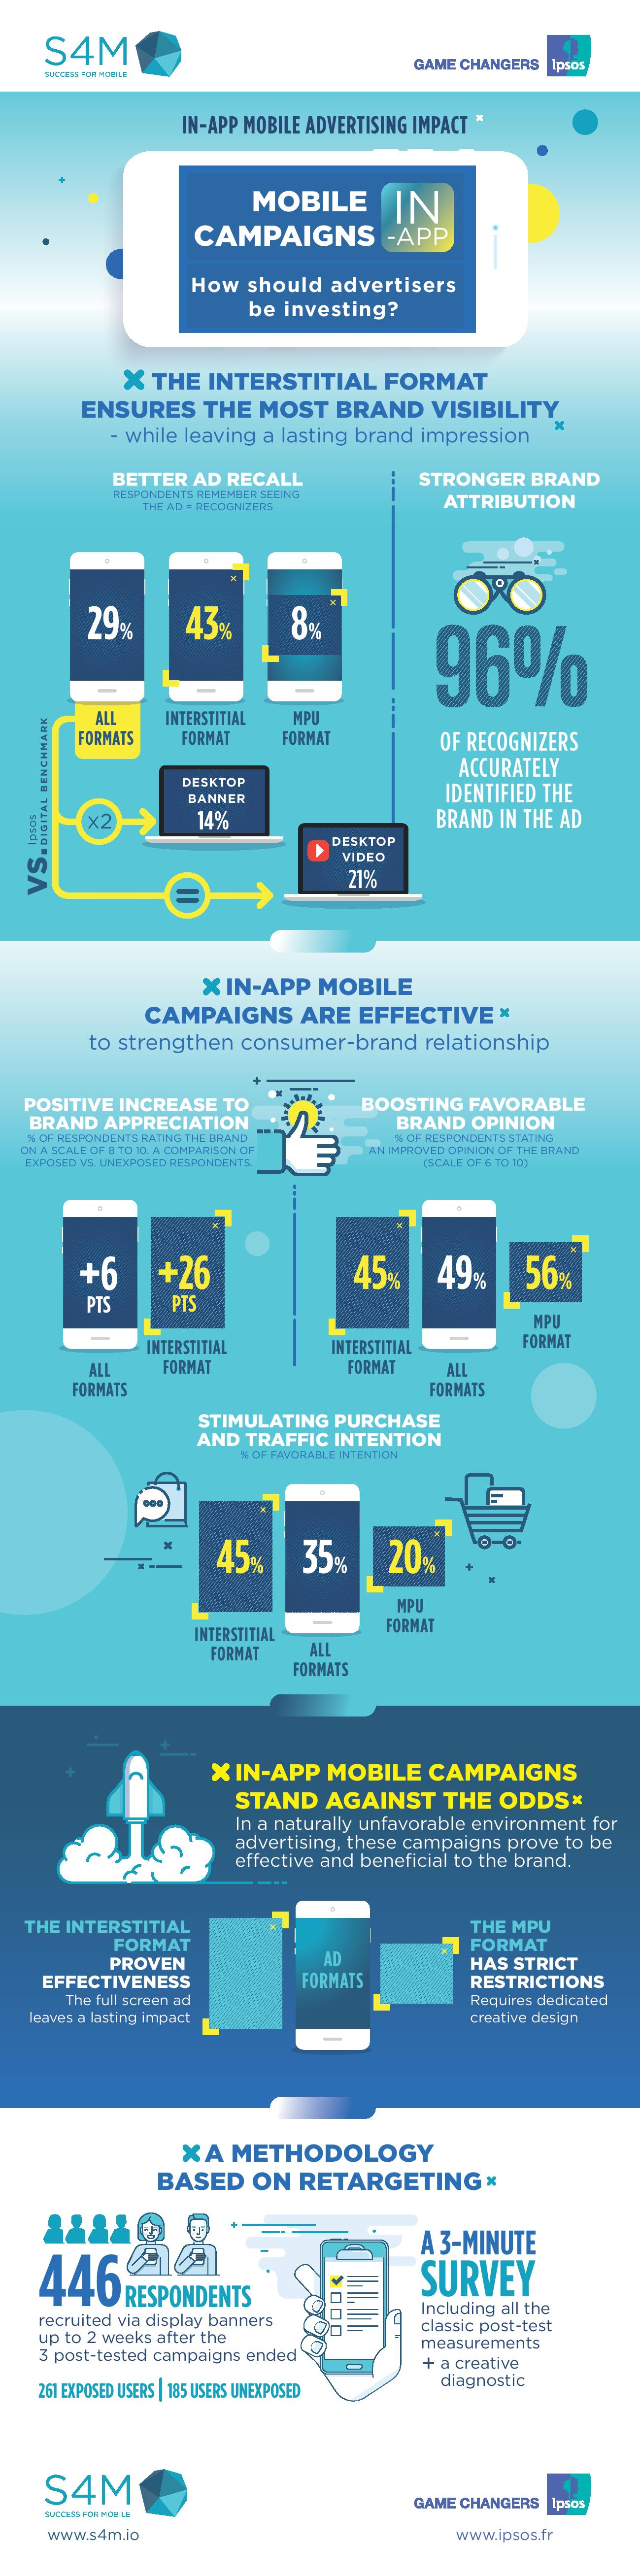 S4M in-app ads infographic